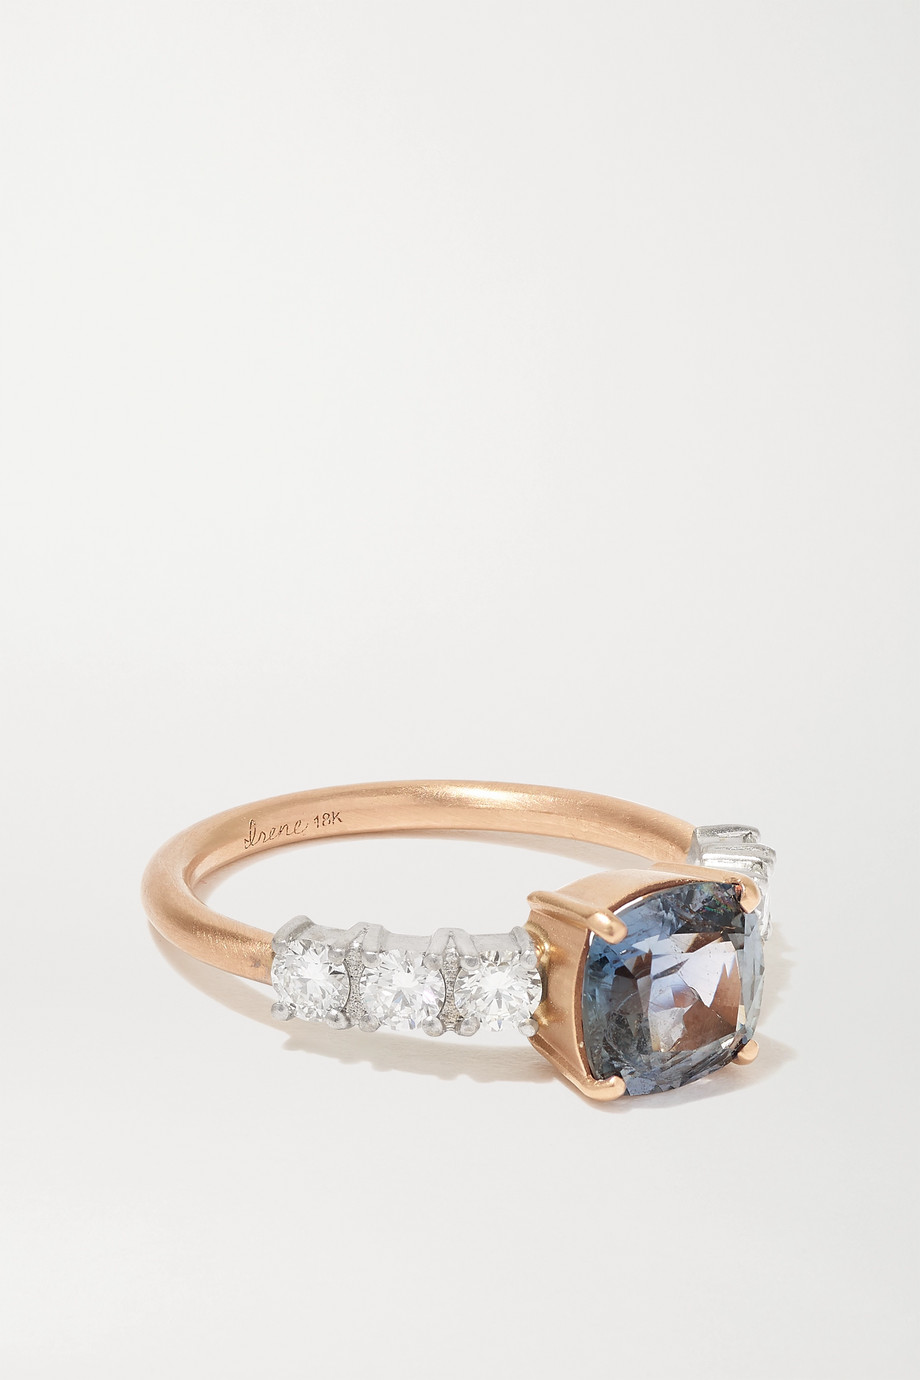 Irene Neuwirth Tennis 18-karat rose and white gold, sapphire and diamond ring